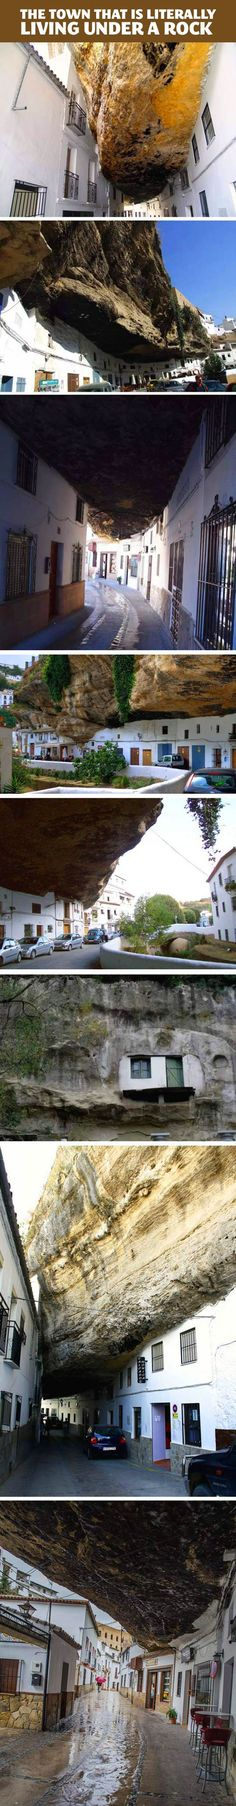 The town that is literally living under a rock…